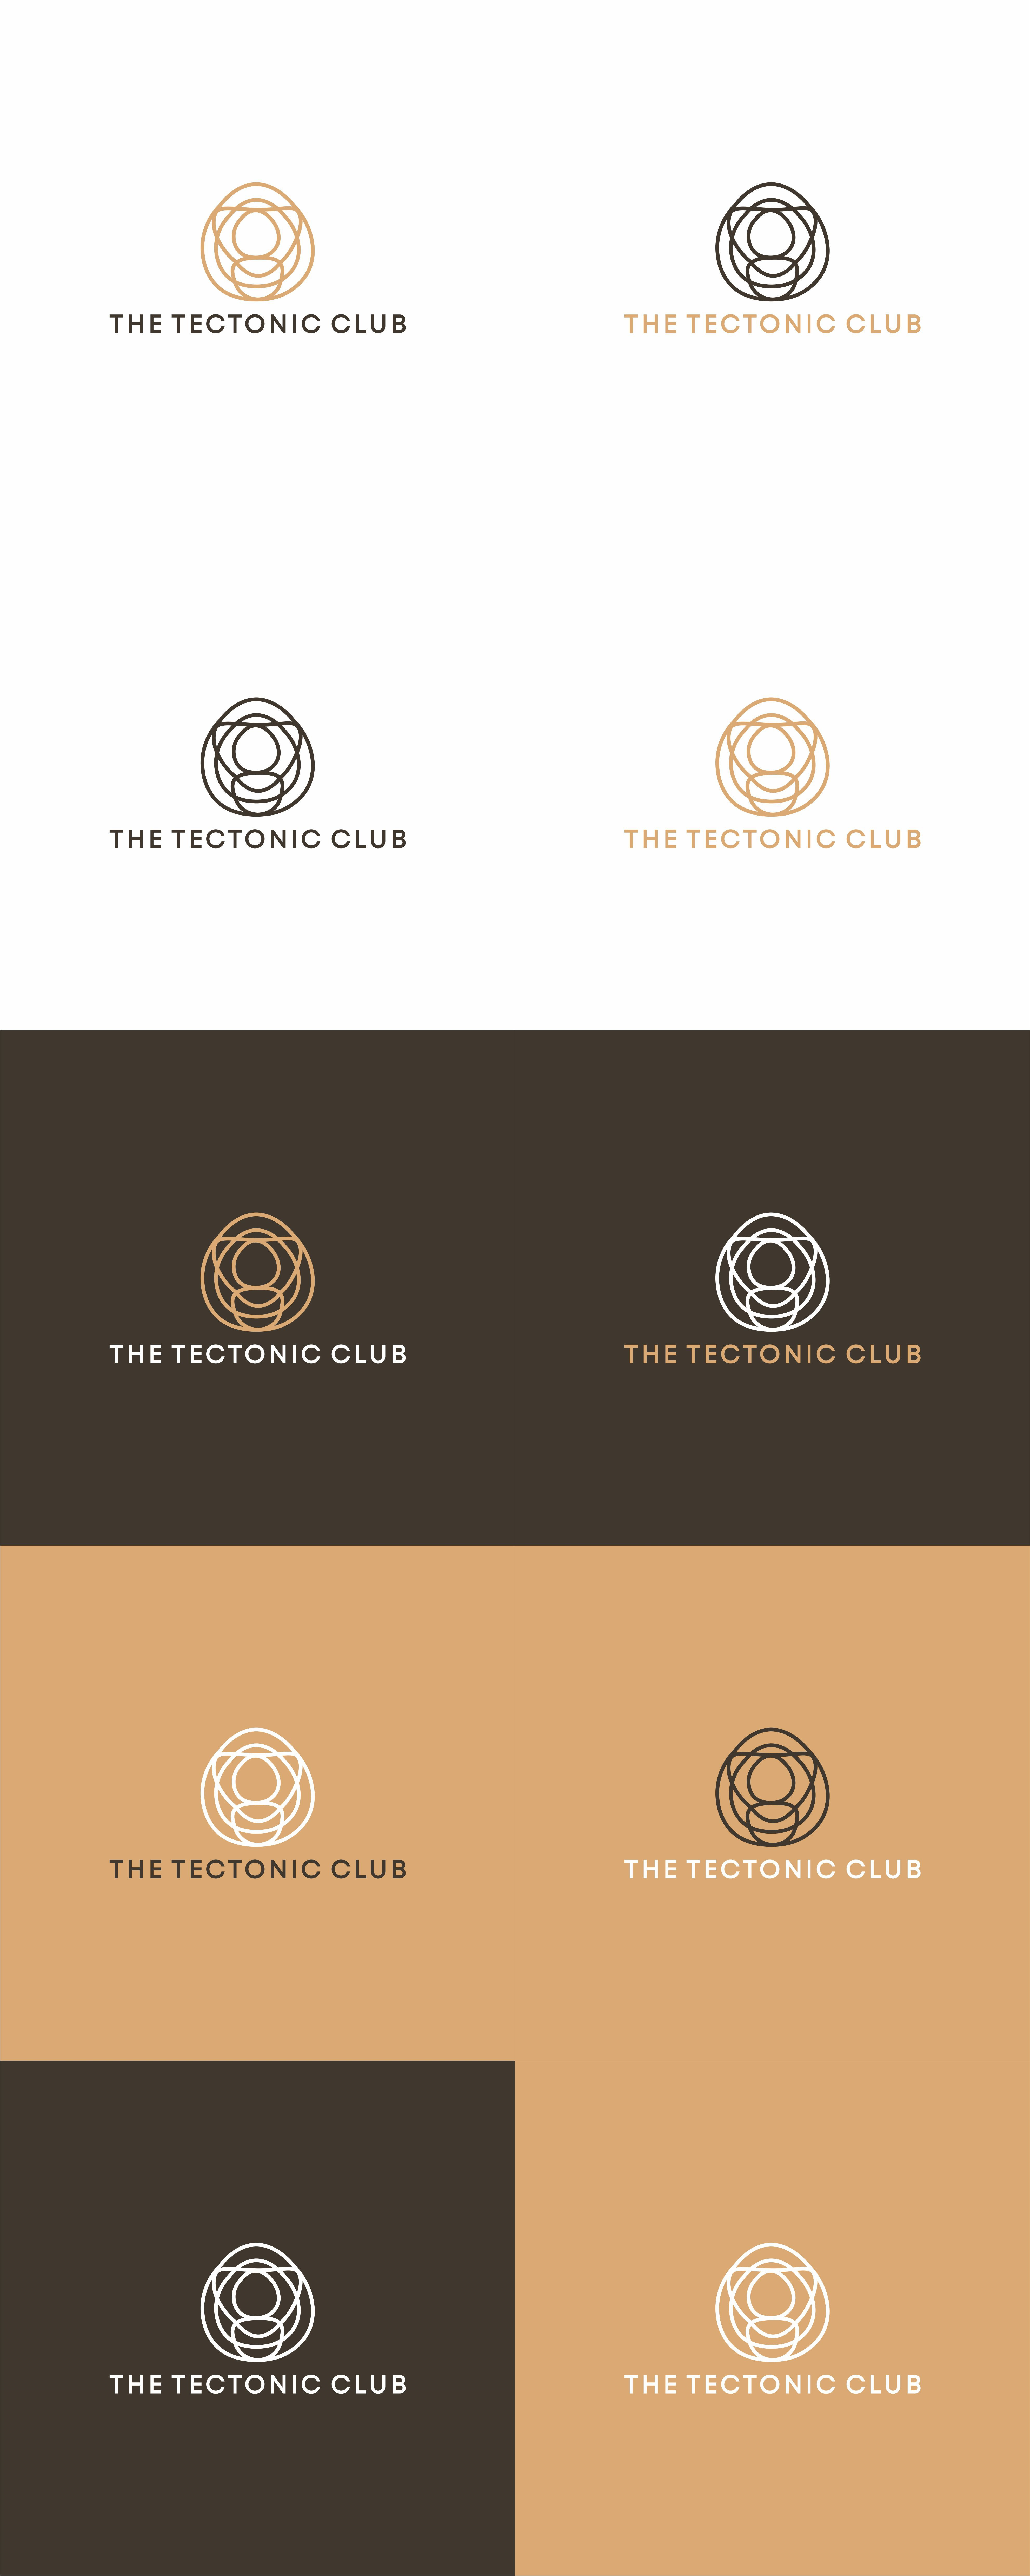 Design a logo for the Tectonic Club